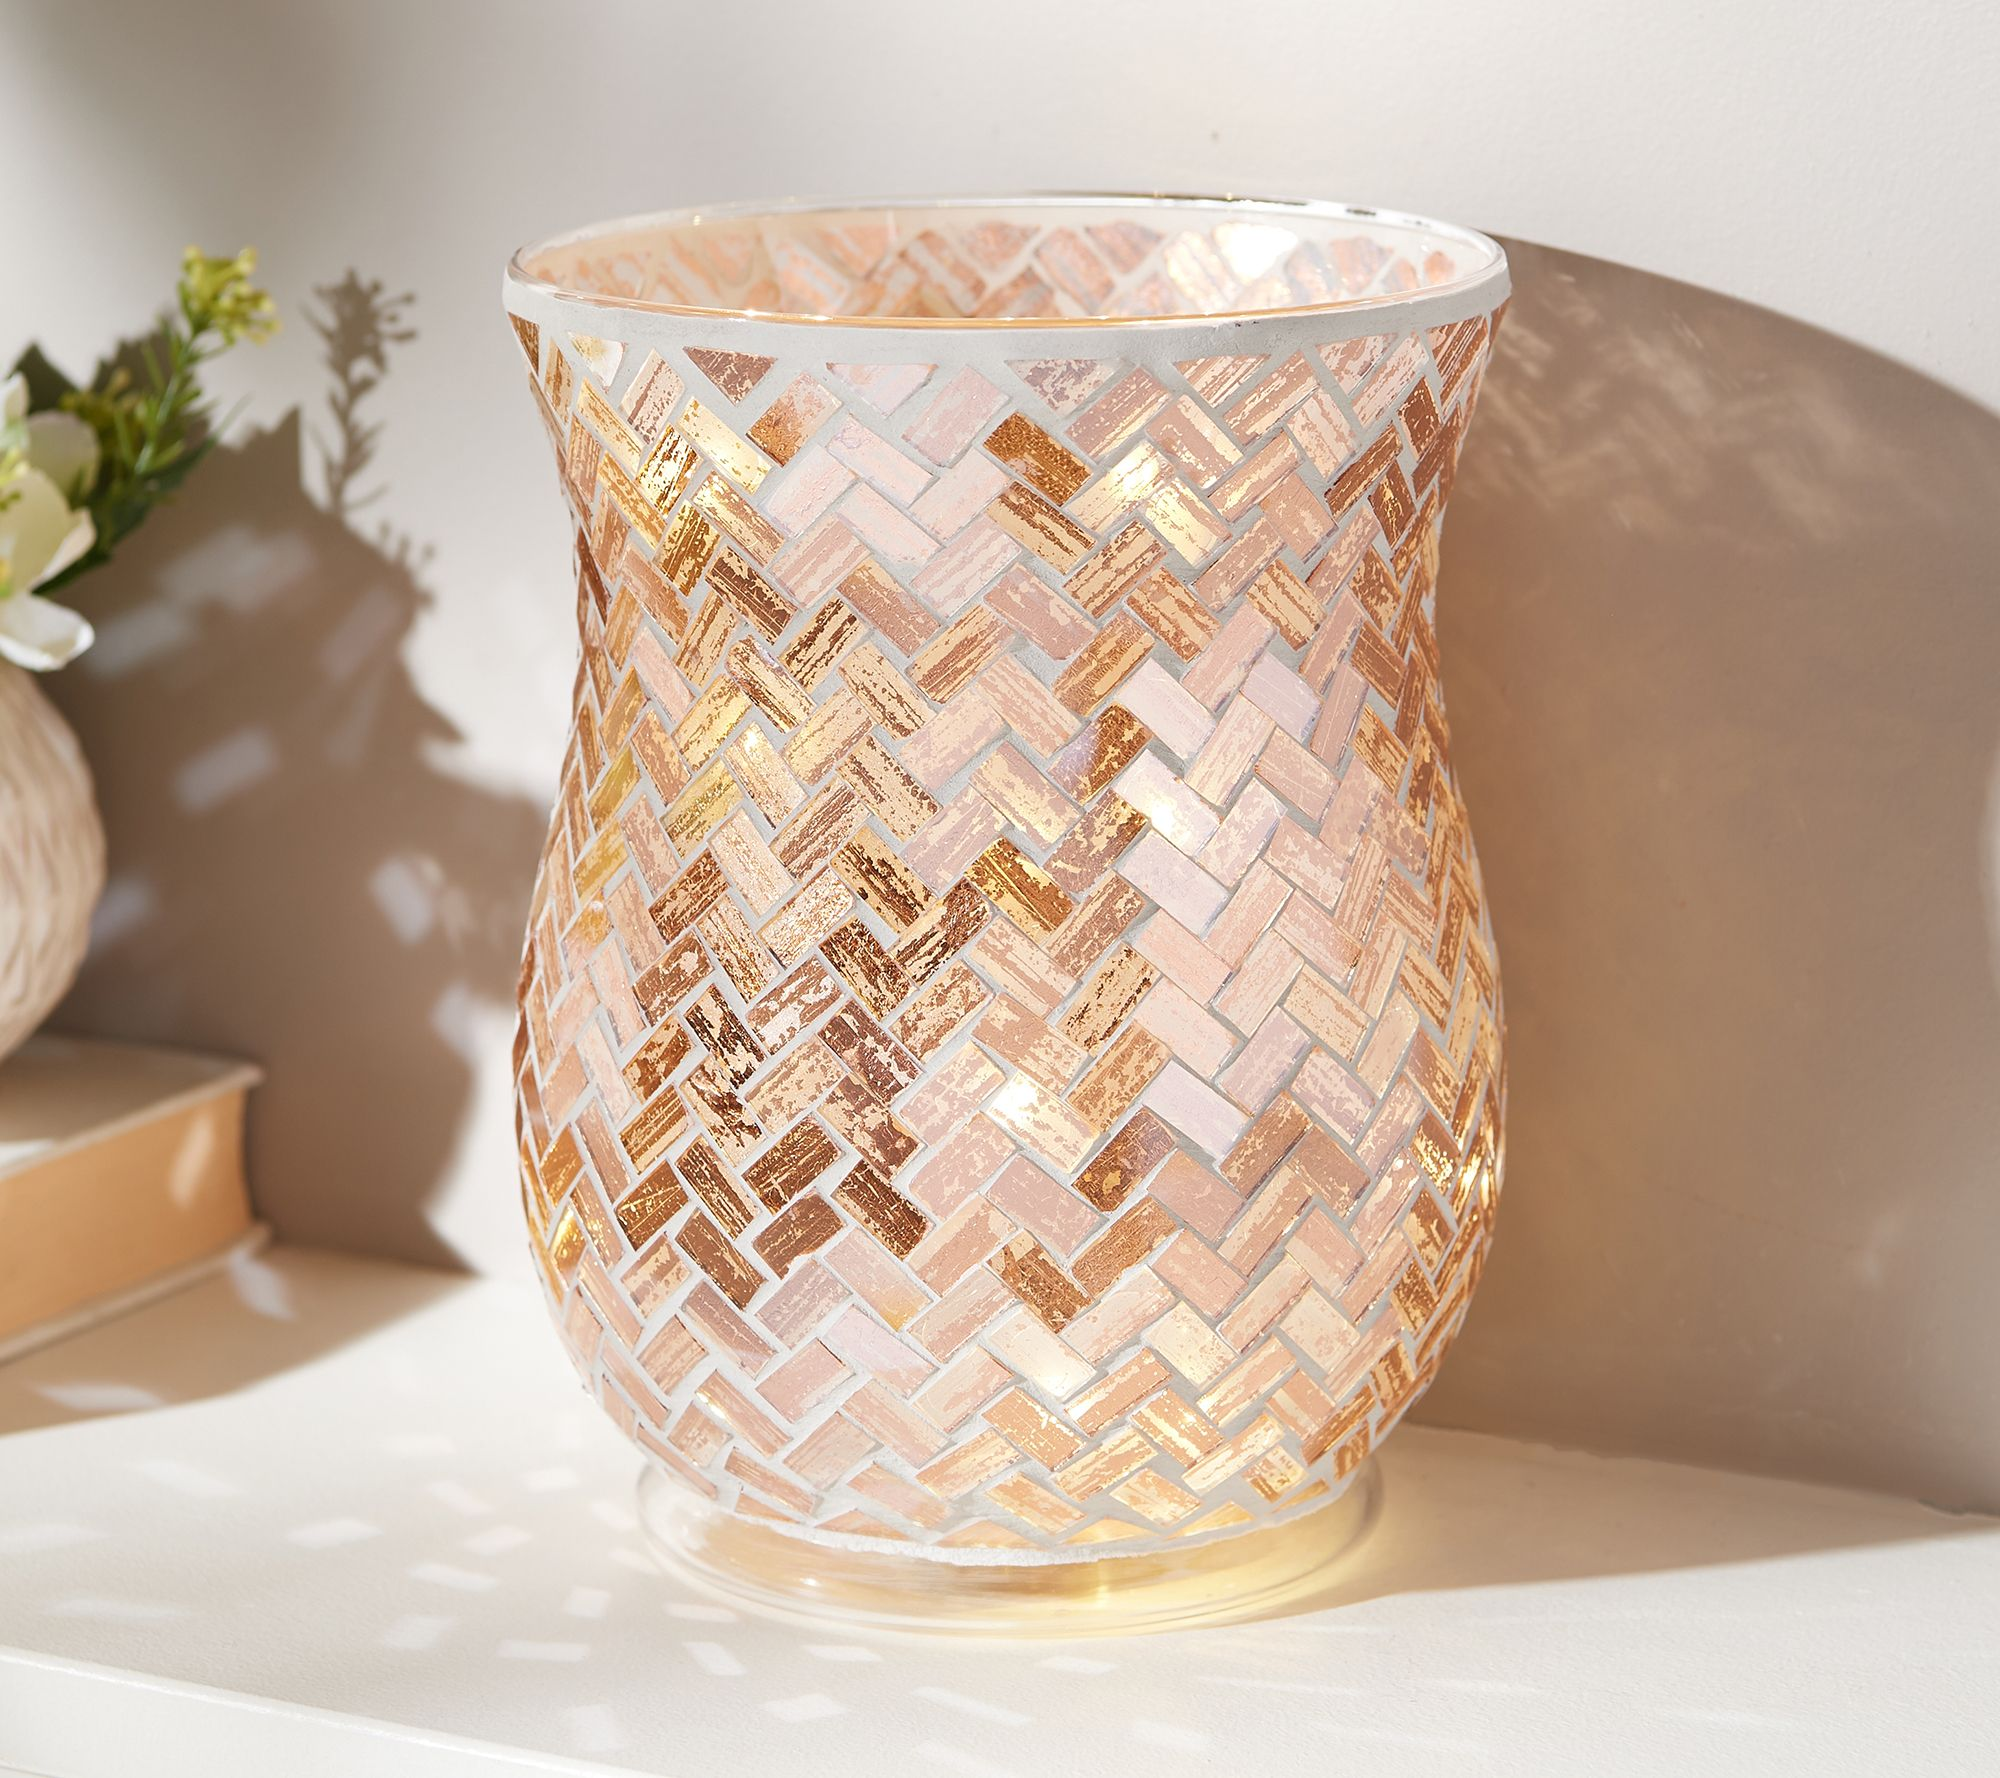 Valerie Mosaic Hurricane Lamp w// Microlights New In Box QVC Parr Hill